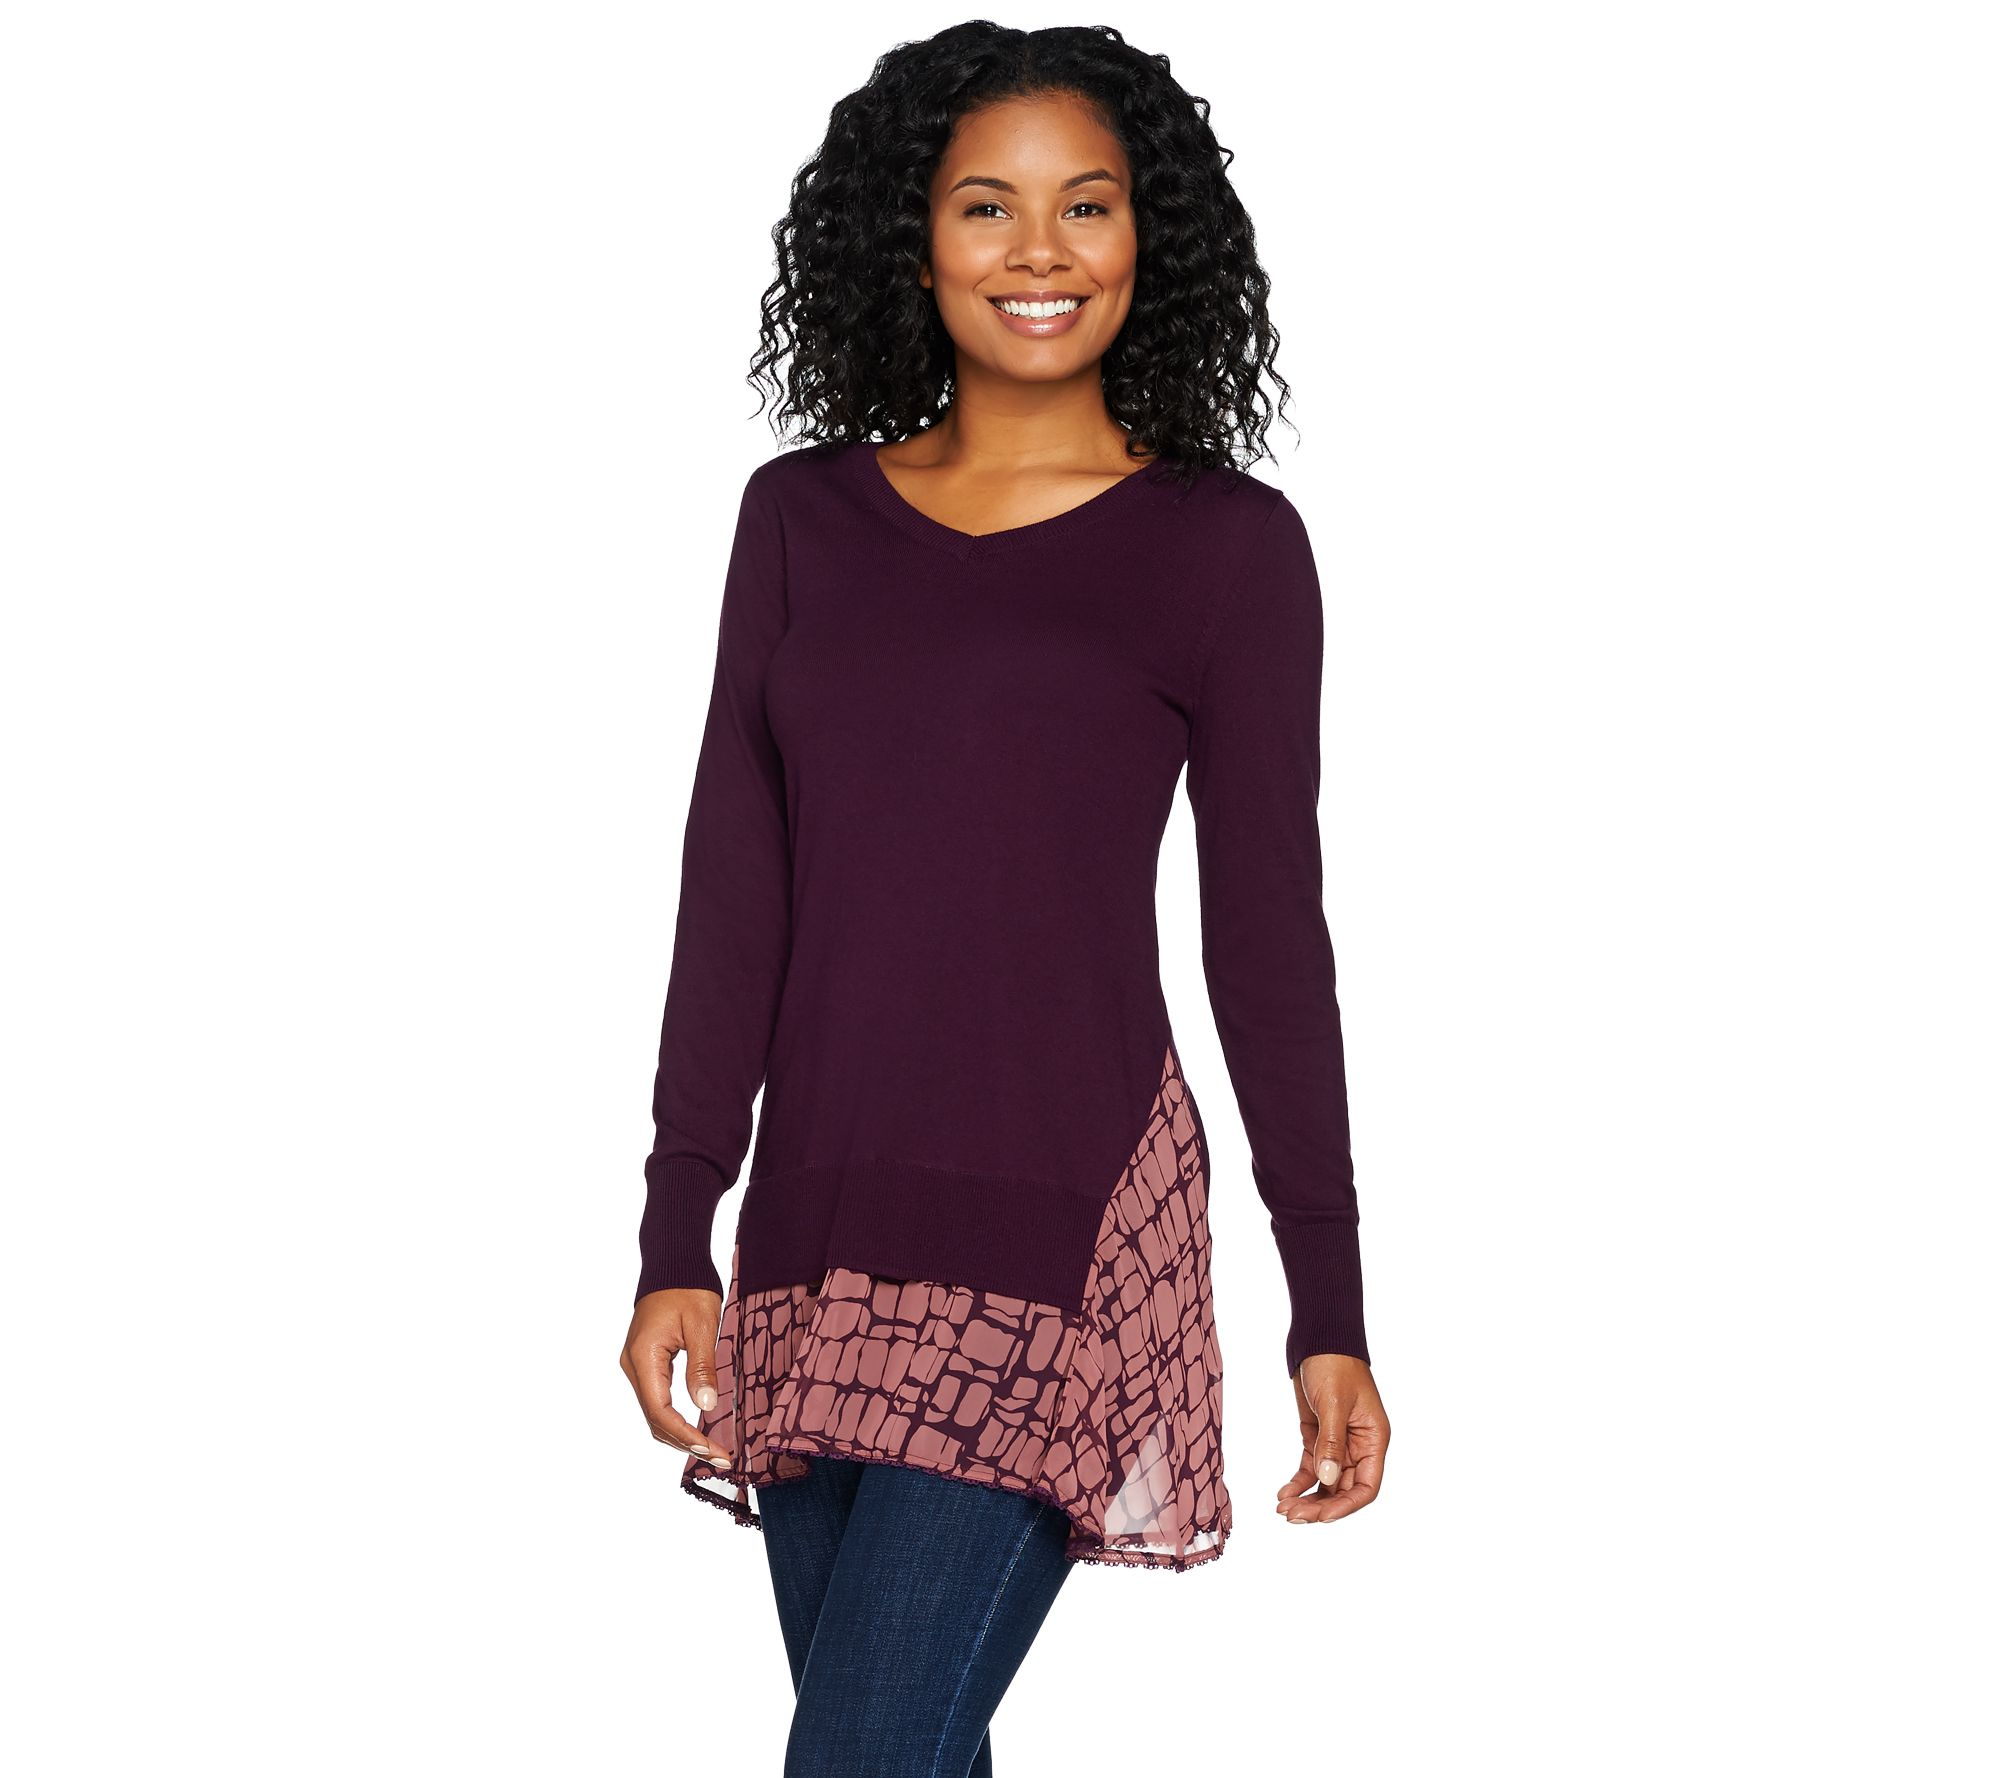 LOGO by Lori Goldstein Cotton Cashmere Sweater w  Lace and Chiffon Hem -  Page 1 — QVC.com d4fbaeee8